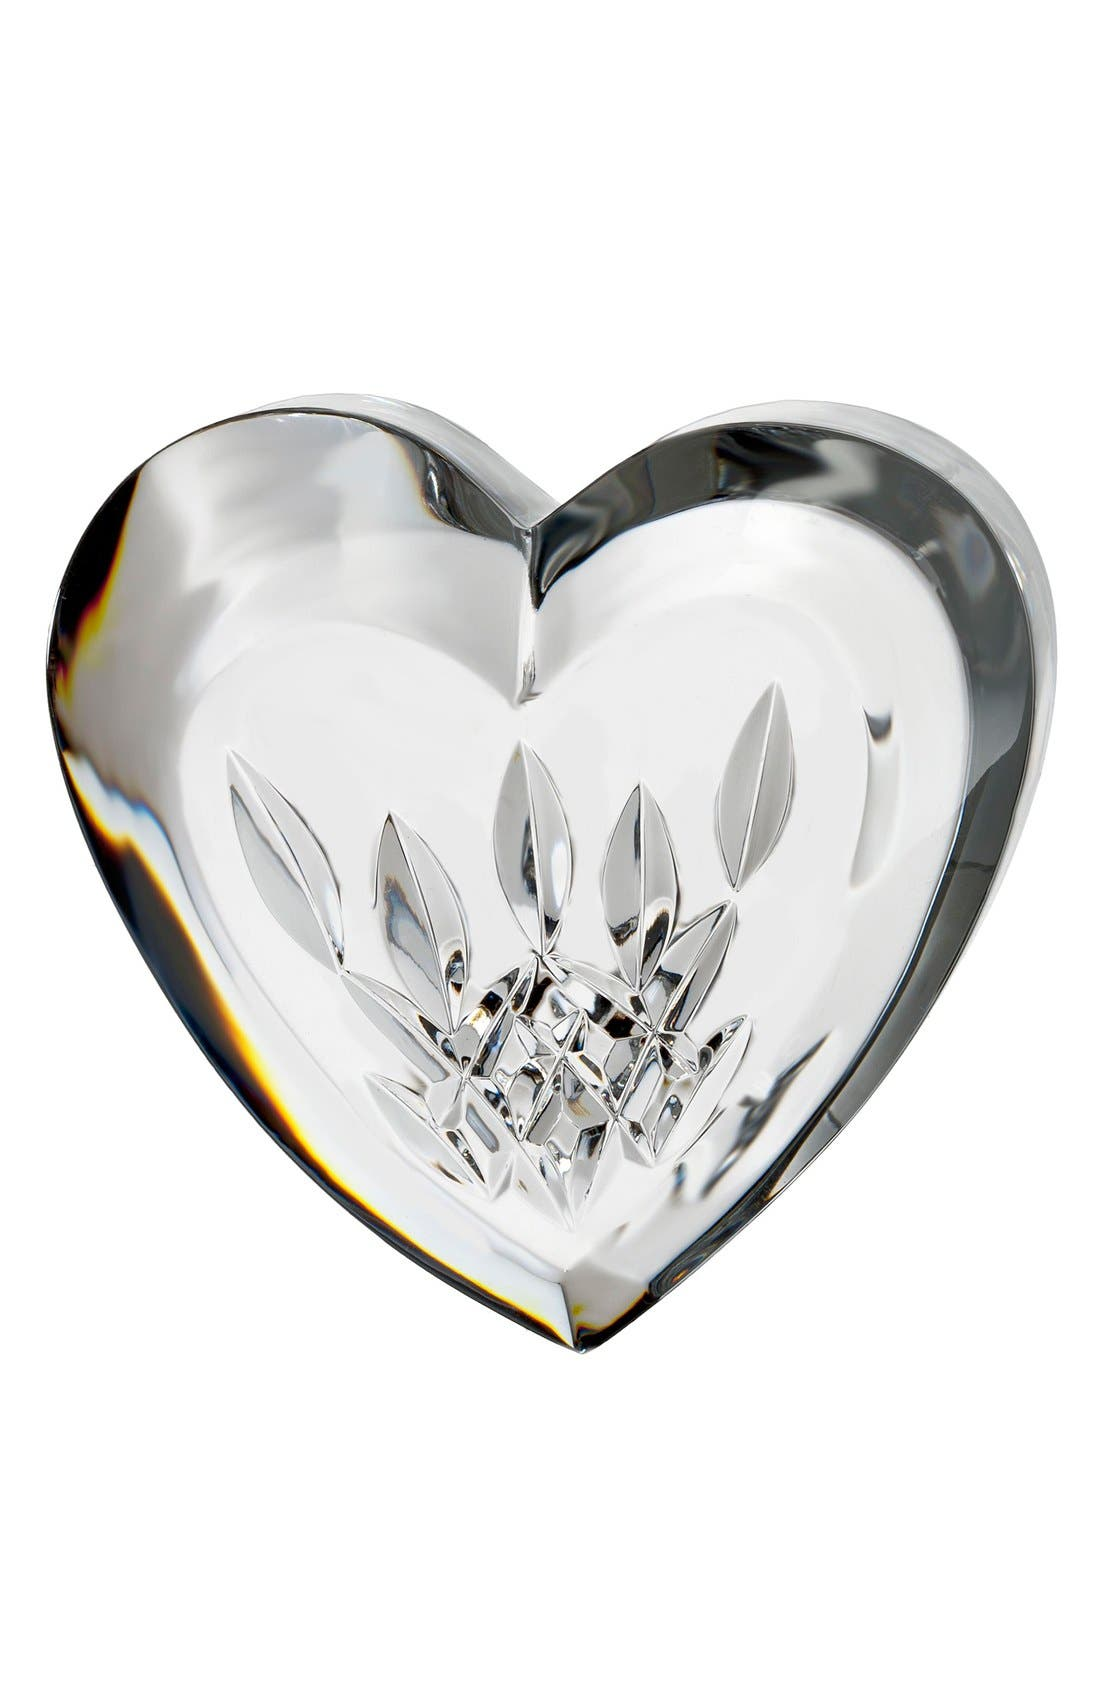 'Lismore' Heart Lead Crystal Paperweight,                         Main,                         color, Clear